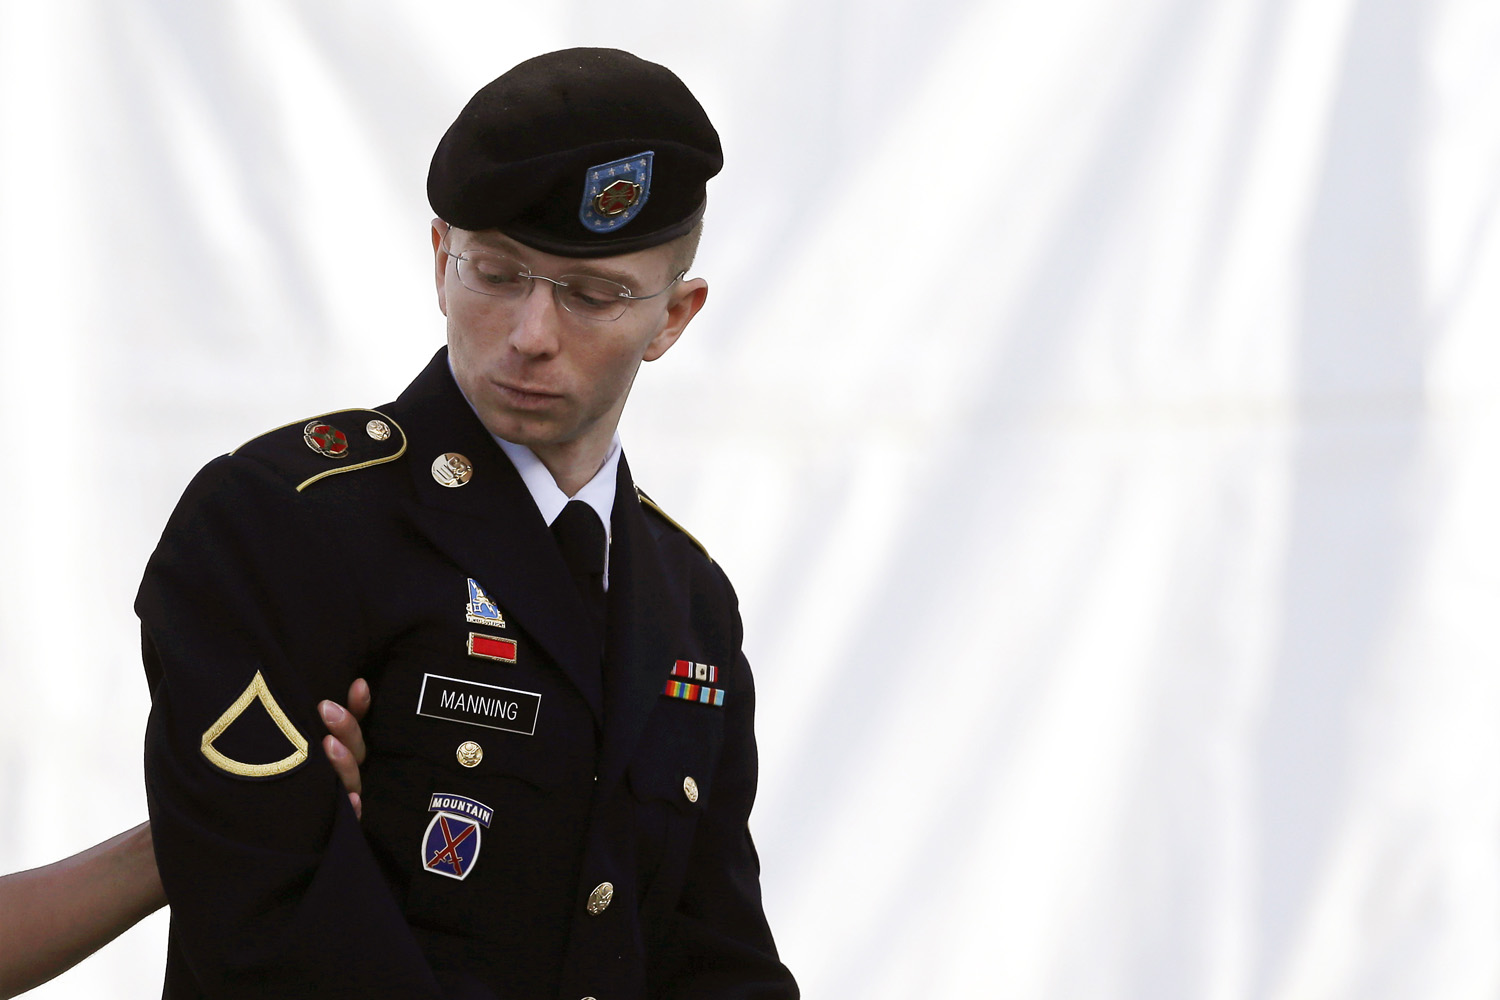 June 5, 2013. Army Pfc. Bradley Manning is escorted into a courthouse in Fort Meade, Md., on the third day of his court martial. Manning is charged with indirectly aiding the enemy by sending troves of classified material to WikiLeaks. He faces up to life in prison.